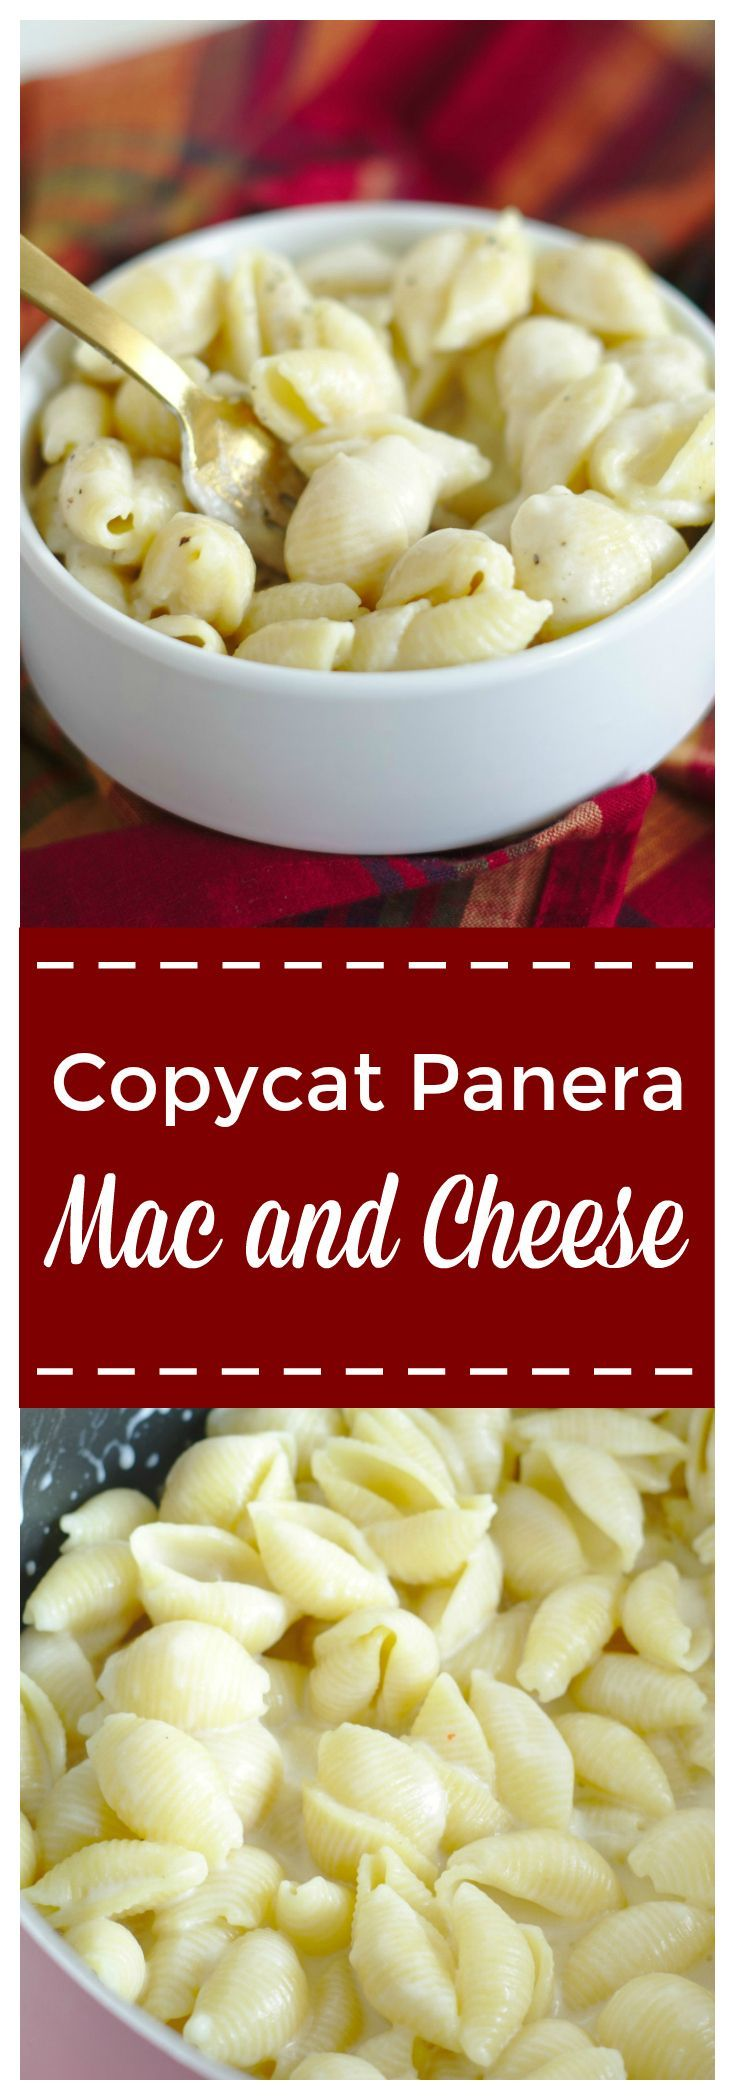 Copycat Panera Mac and Cheese – A quick and easy copycat recipe that tastes just like Panera's mac and cheese! Pasta covered in a creamy white cheddar cheese sauce! #panera #pasta #copycat #macandcheese #macaroni